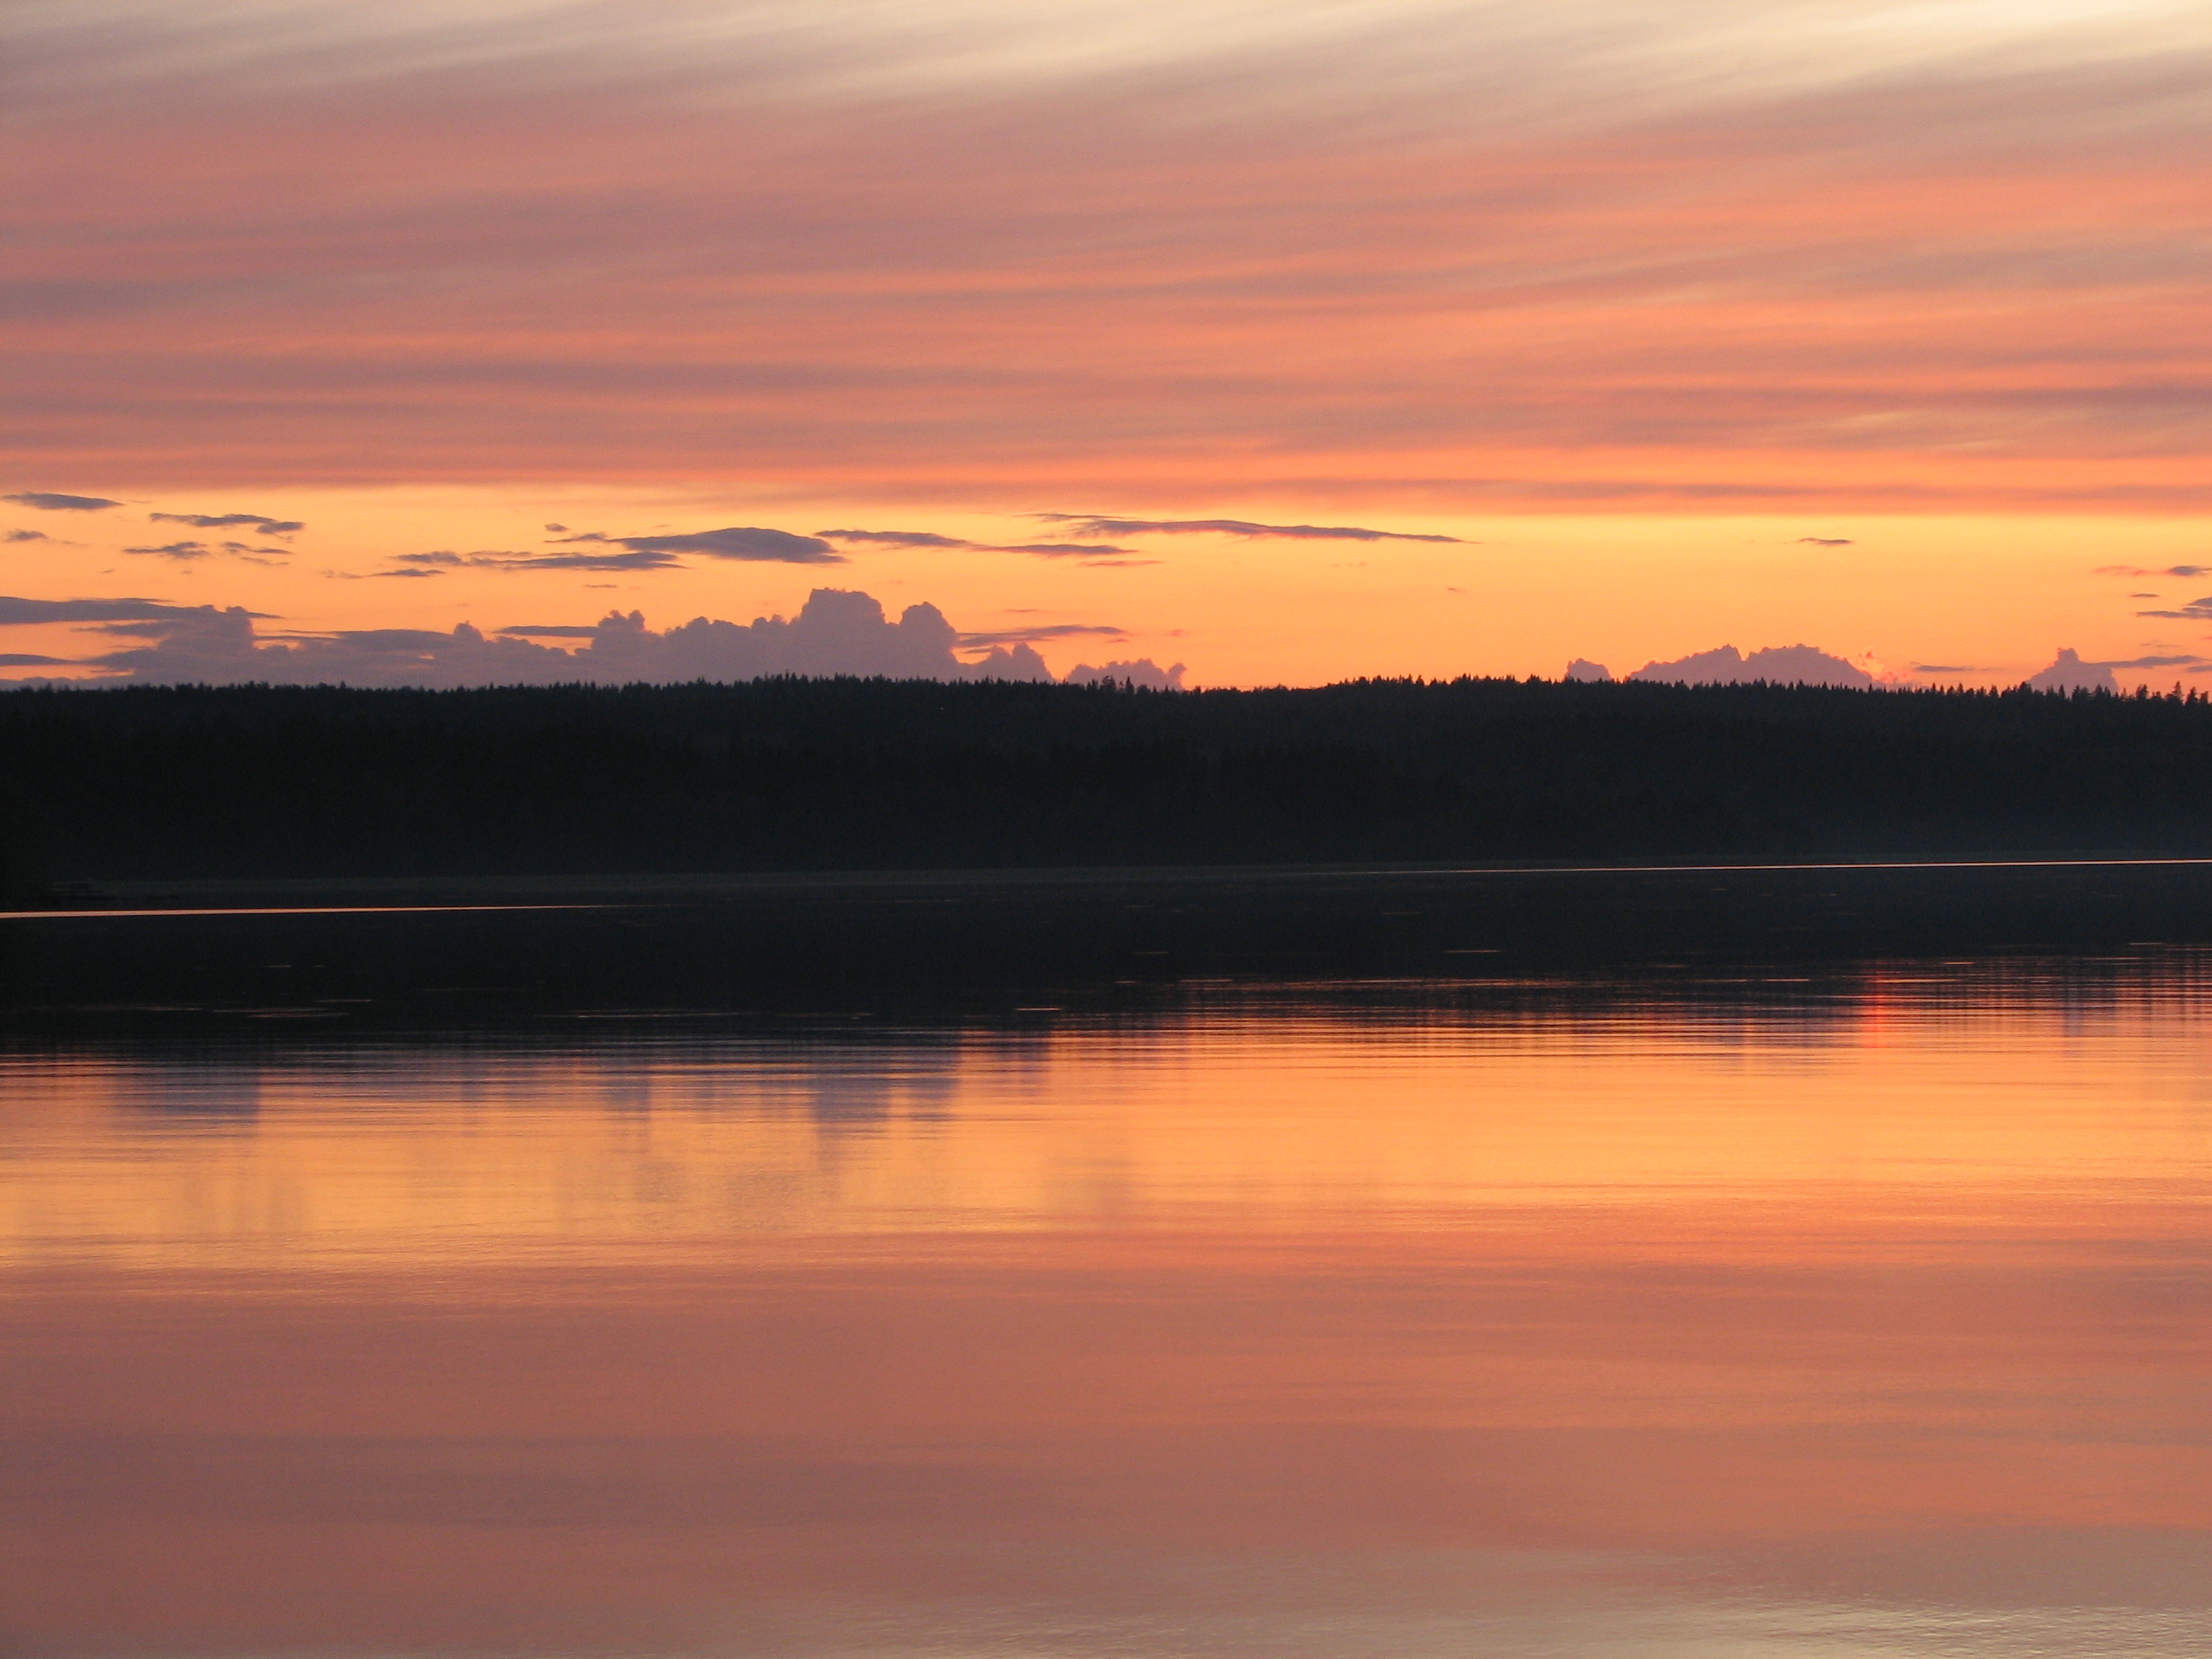 2009 – Finland: lakes and sunsets